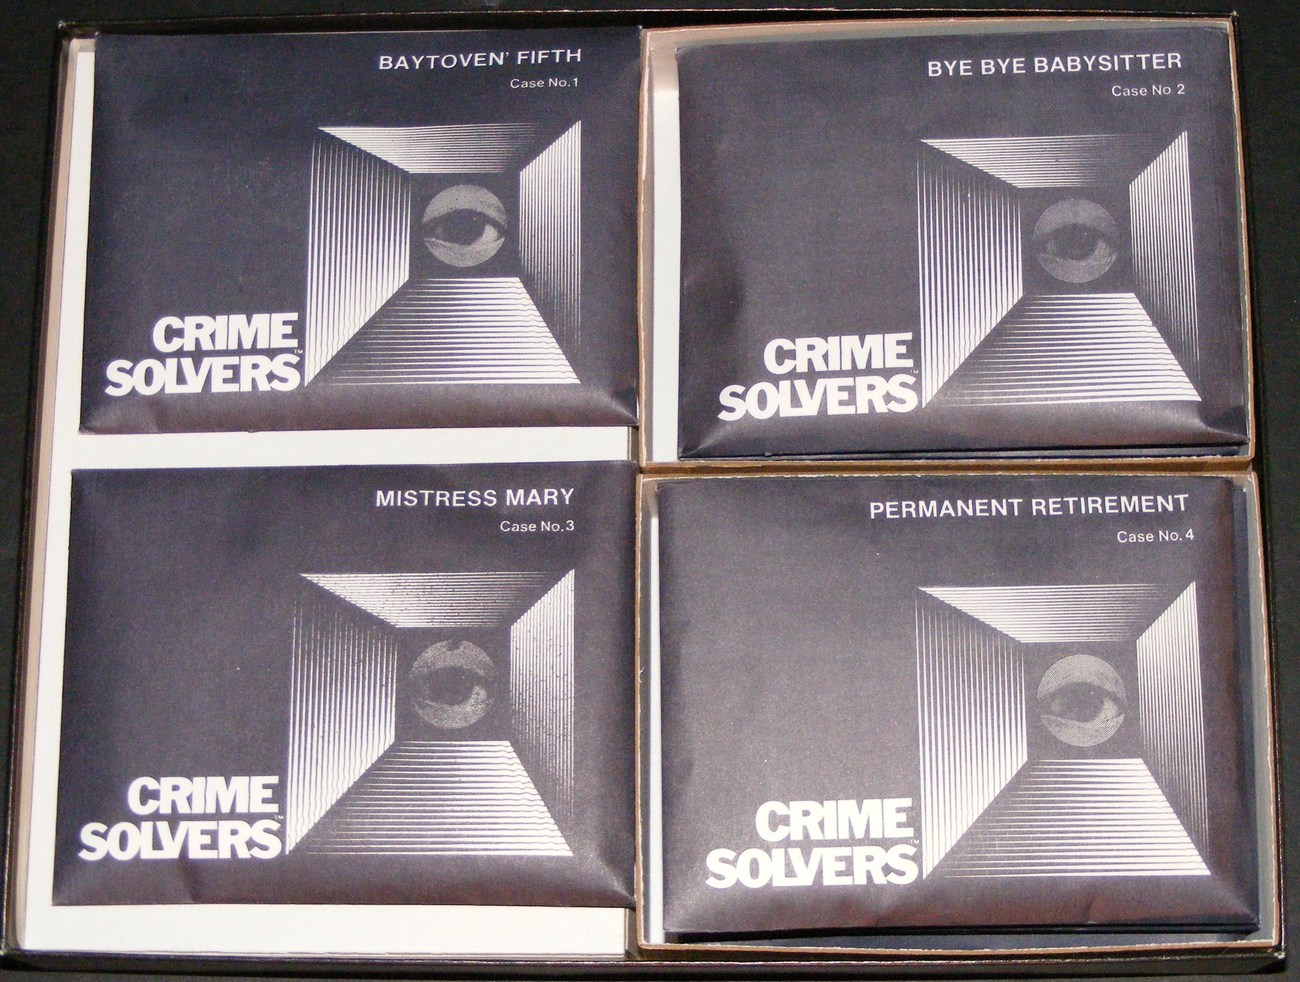 1986 Crime Solvers - First Edition